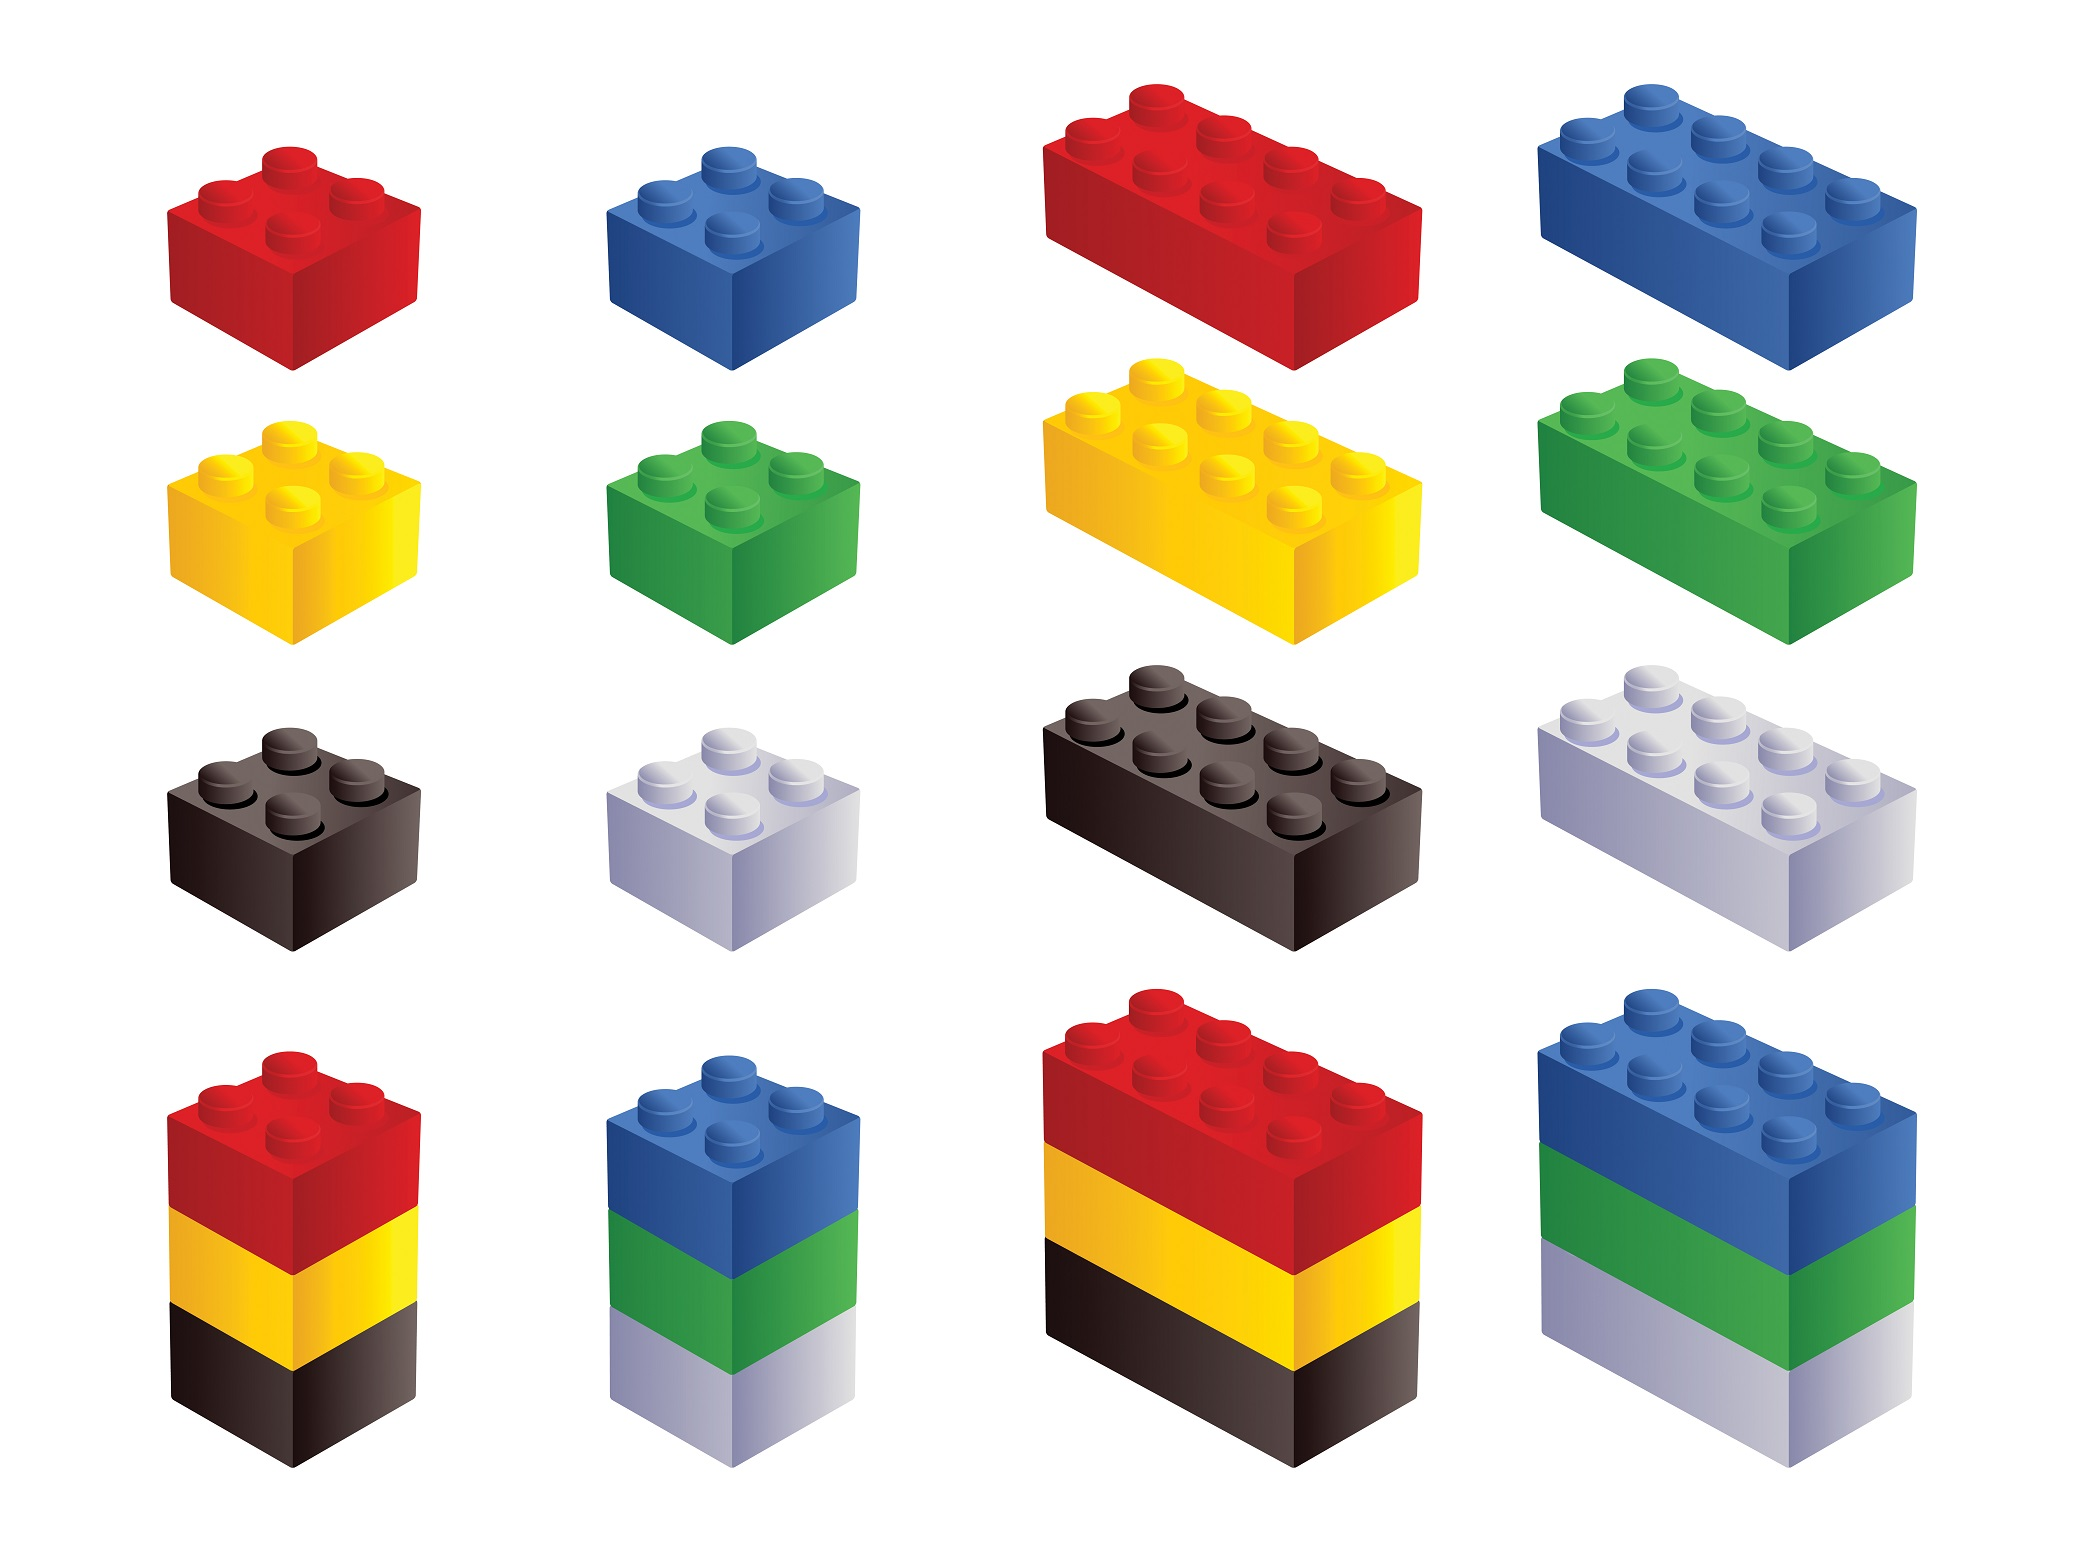 lego building blocks etf investing 0